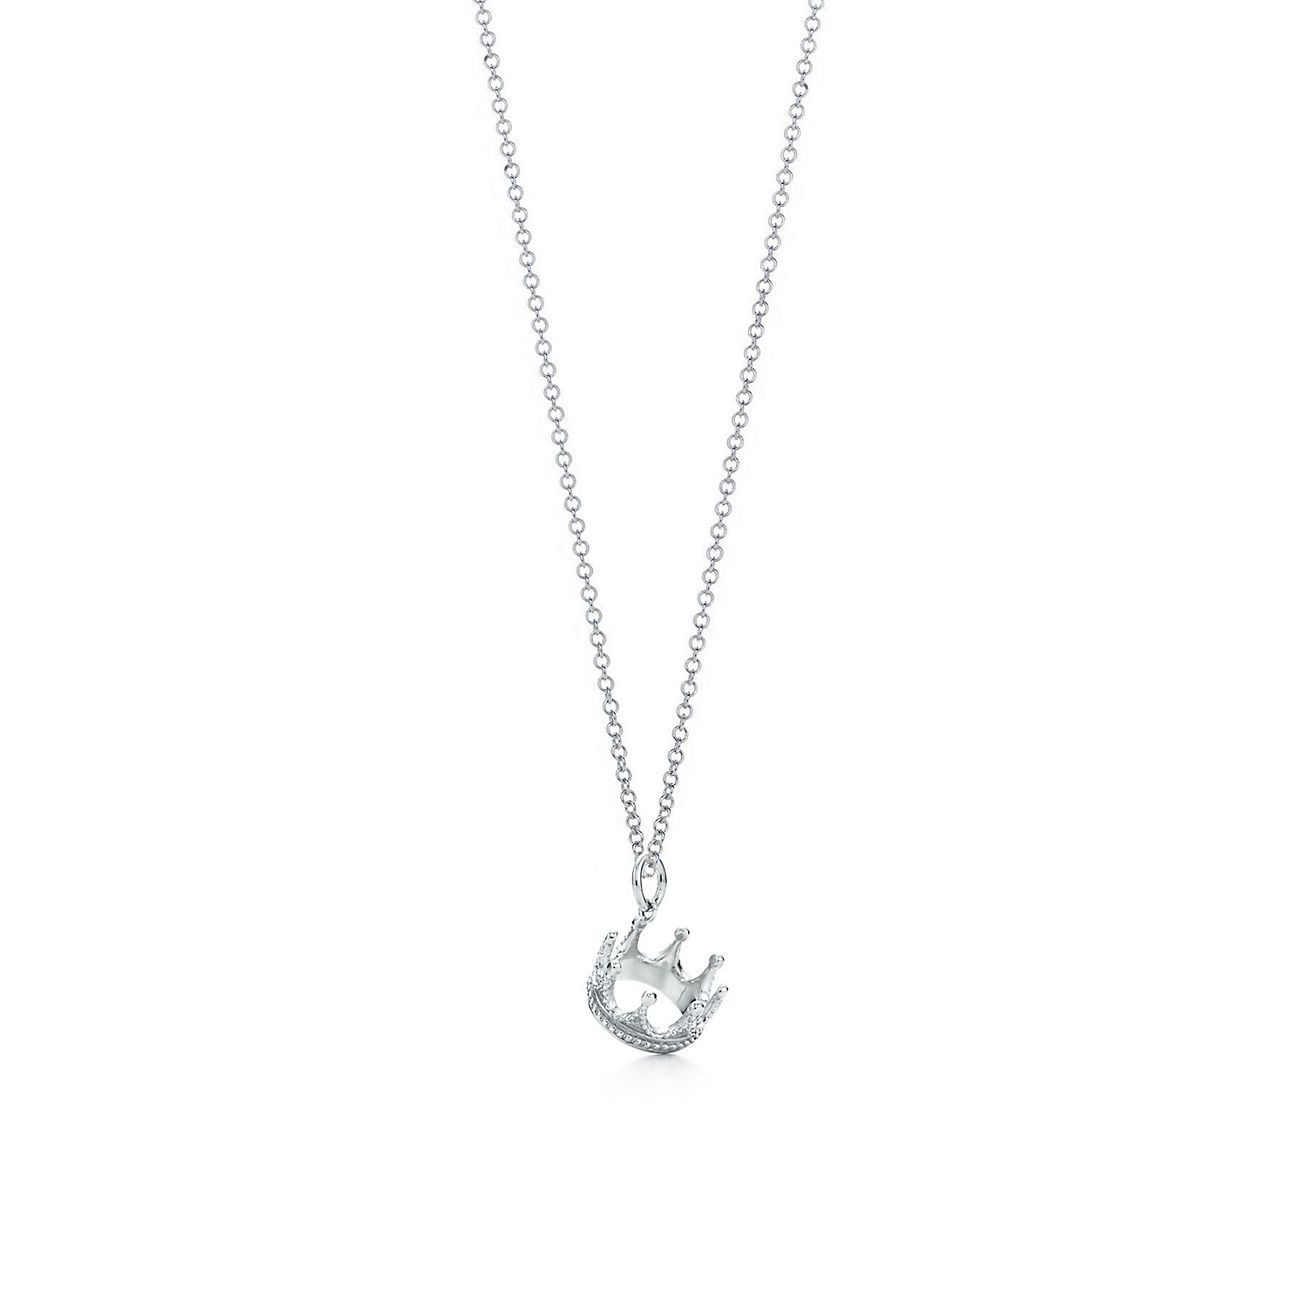 Crown charm in sterling silver on a chain.  e688e5f57f3a